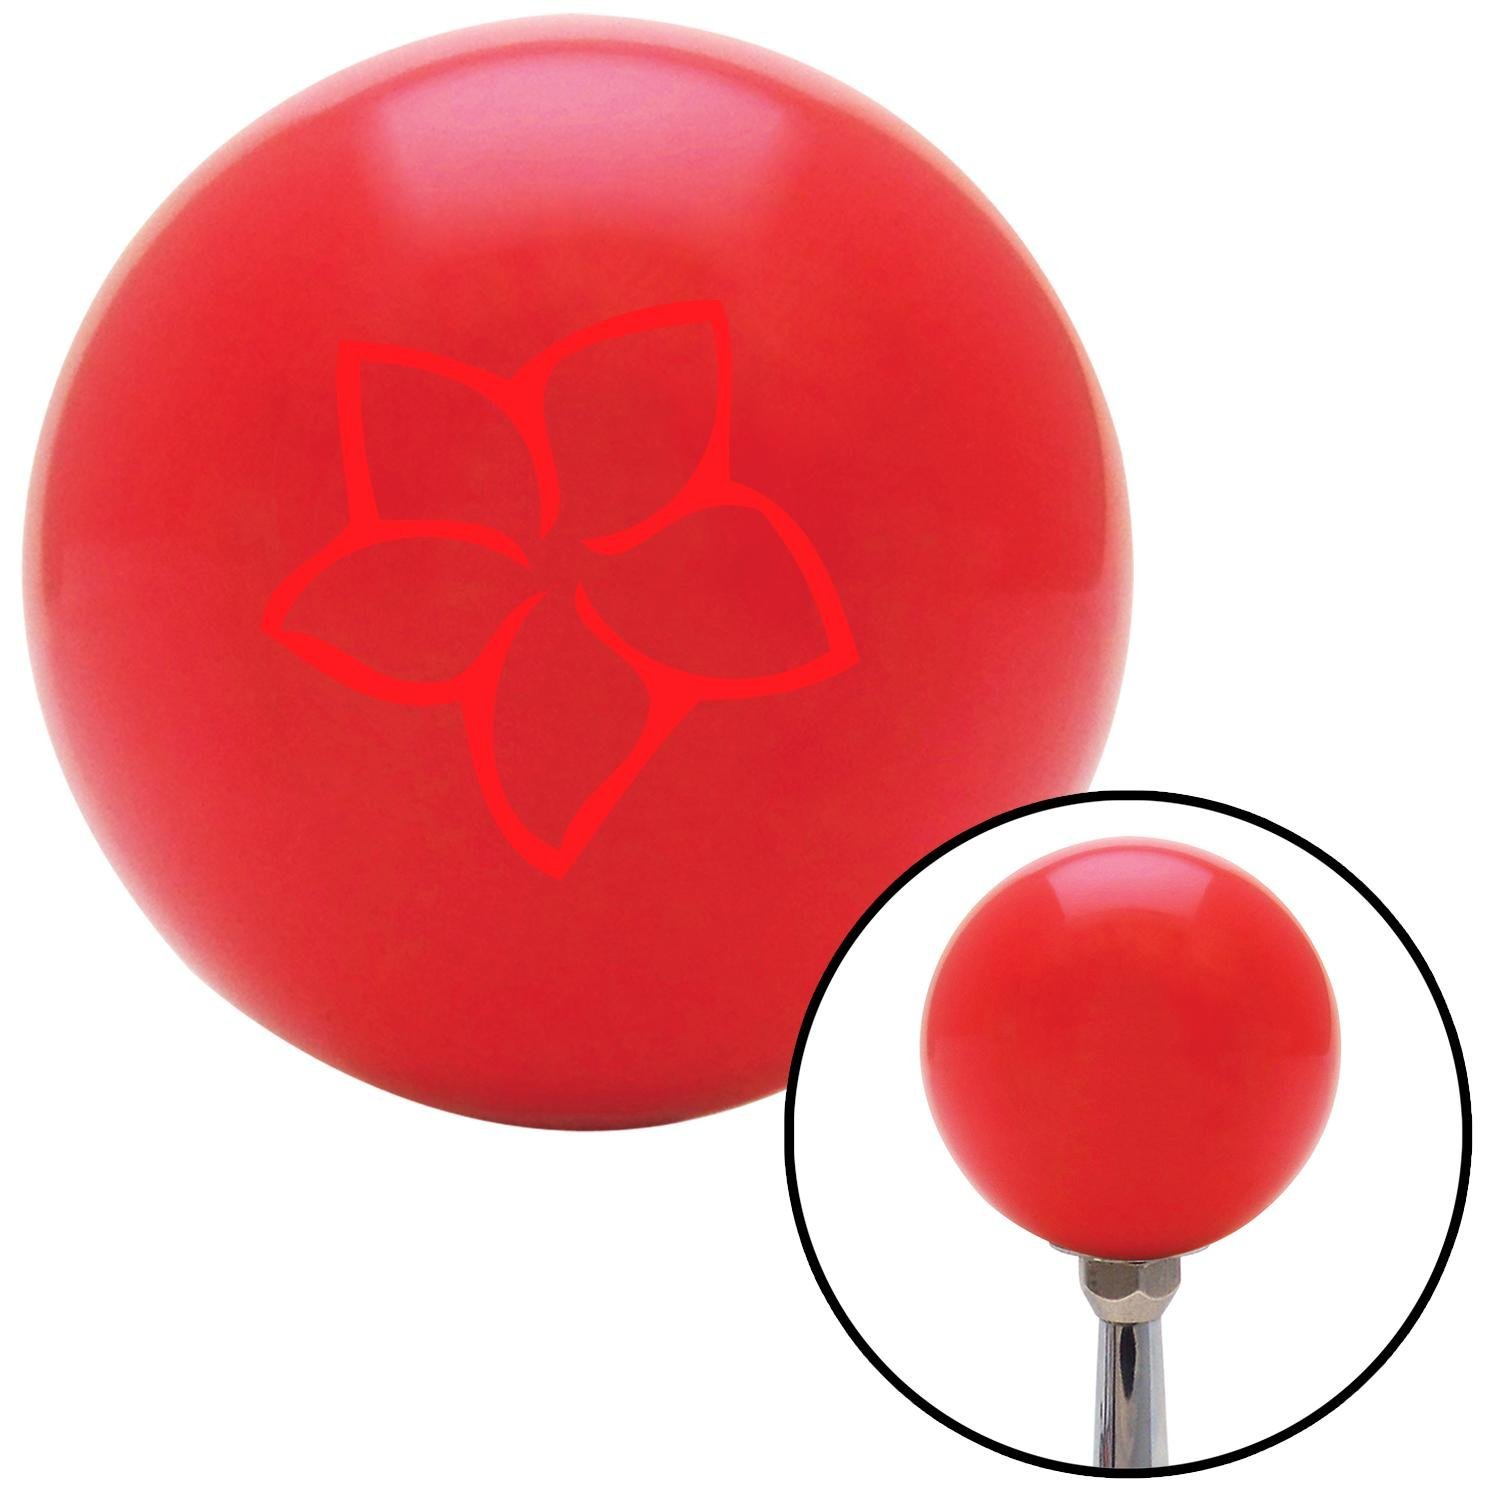 Red Hawaiian Flower 10 American Shifter 95717 Red Shift Knob with M16 x 1.5 Insert